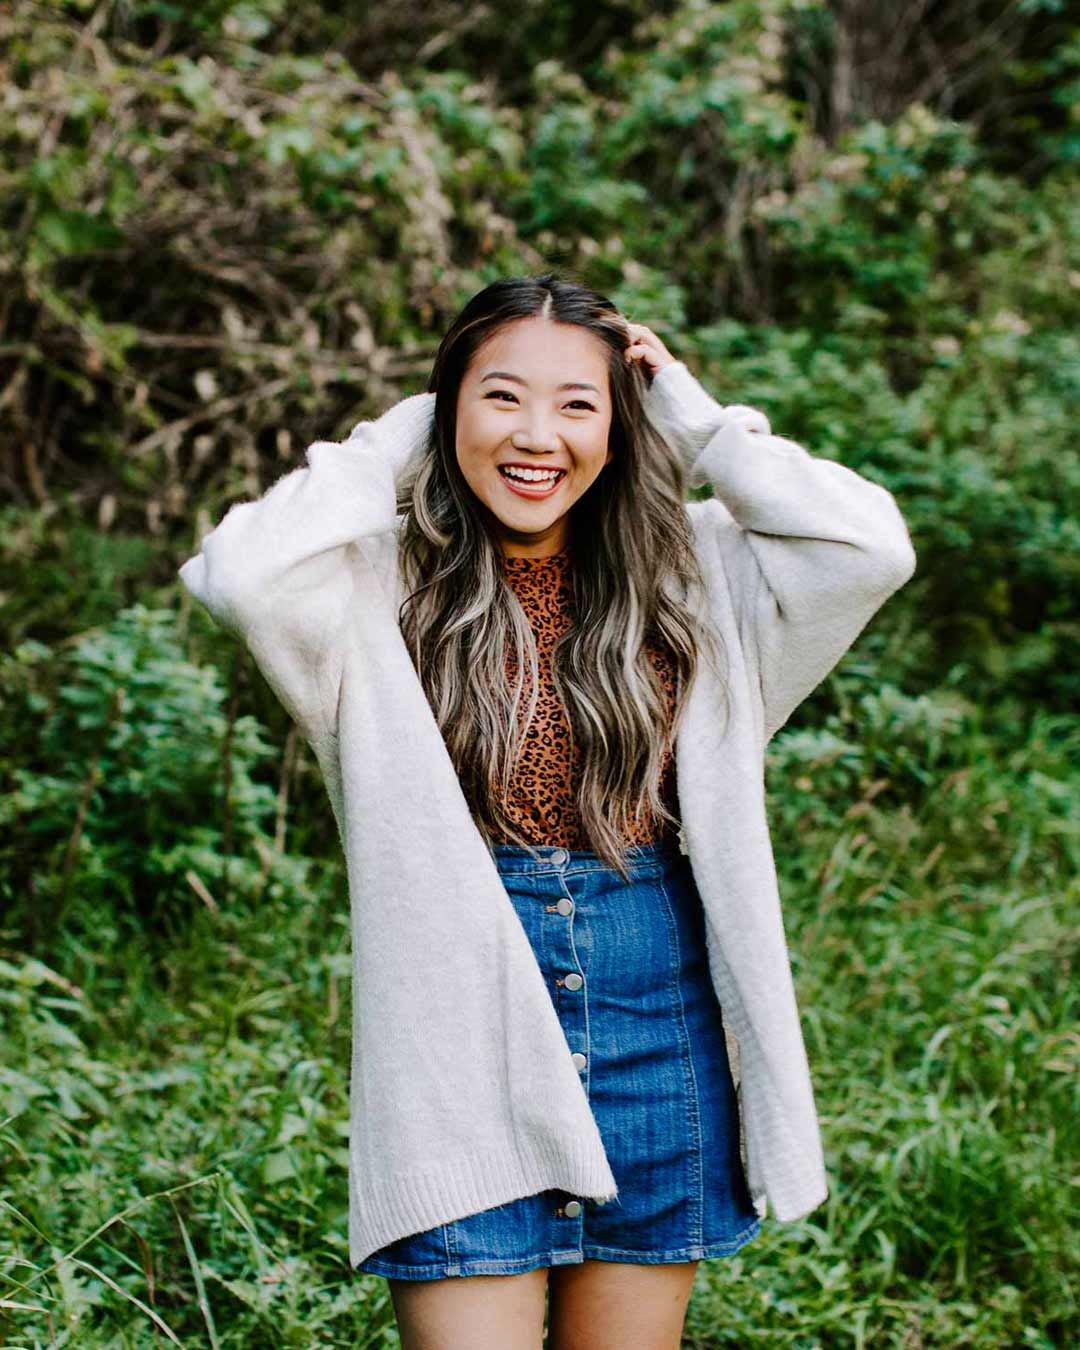 nora xiong of crown college